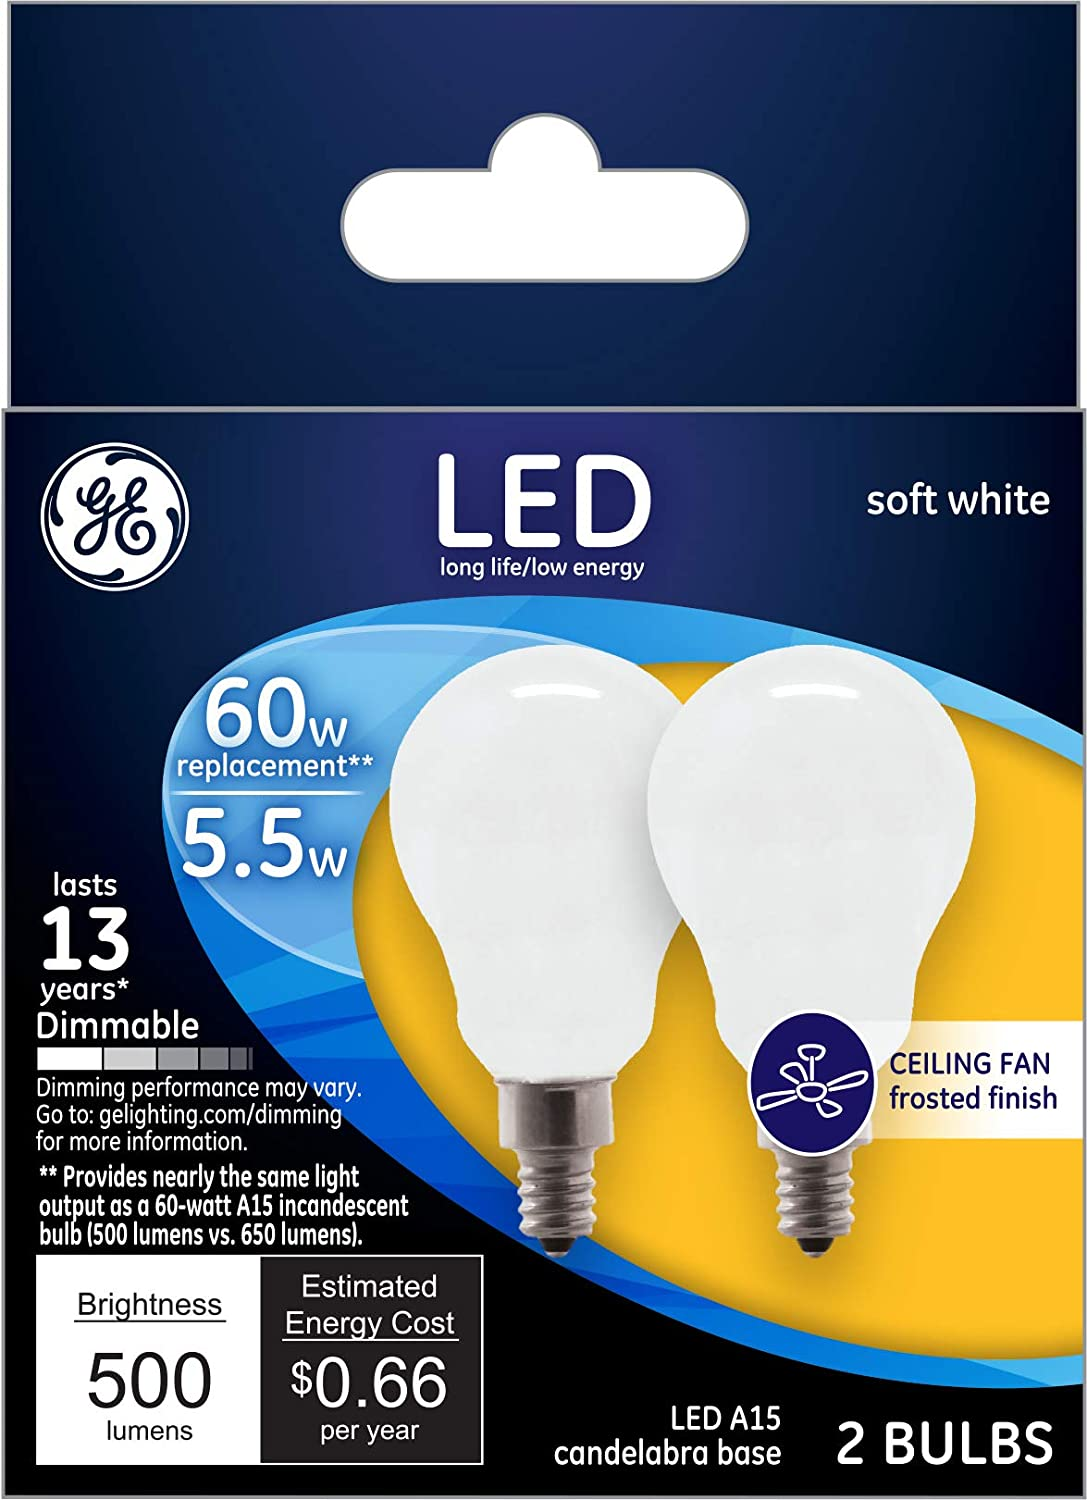 60-Watt Replacement GE Lighting 24949 Dimmable Soft White Bulb 5.5 Medium Base A15 Ceiling Fan//Appliance LED 12-Pack Candelabra Frosted 500-Lumen